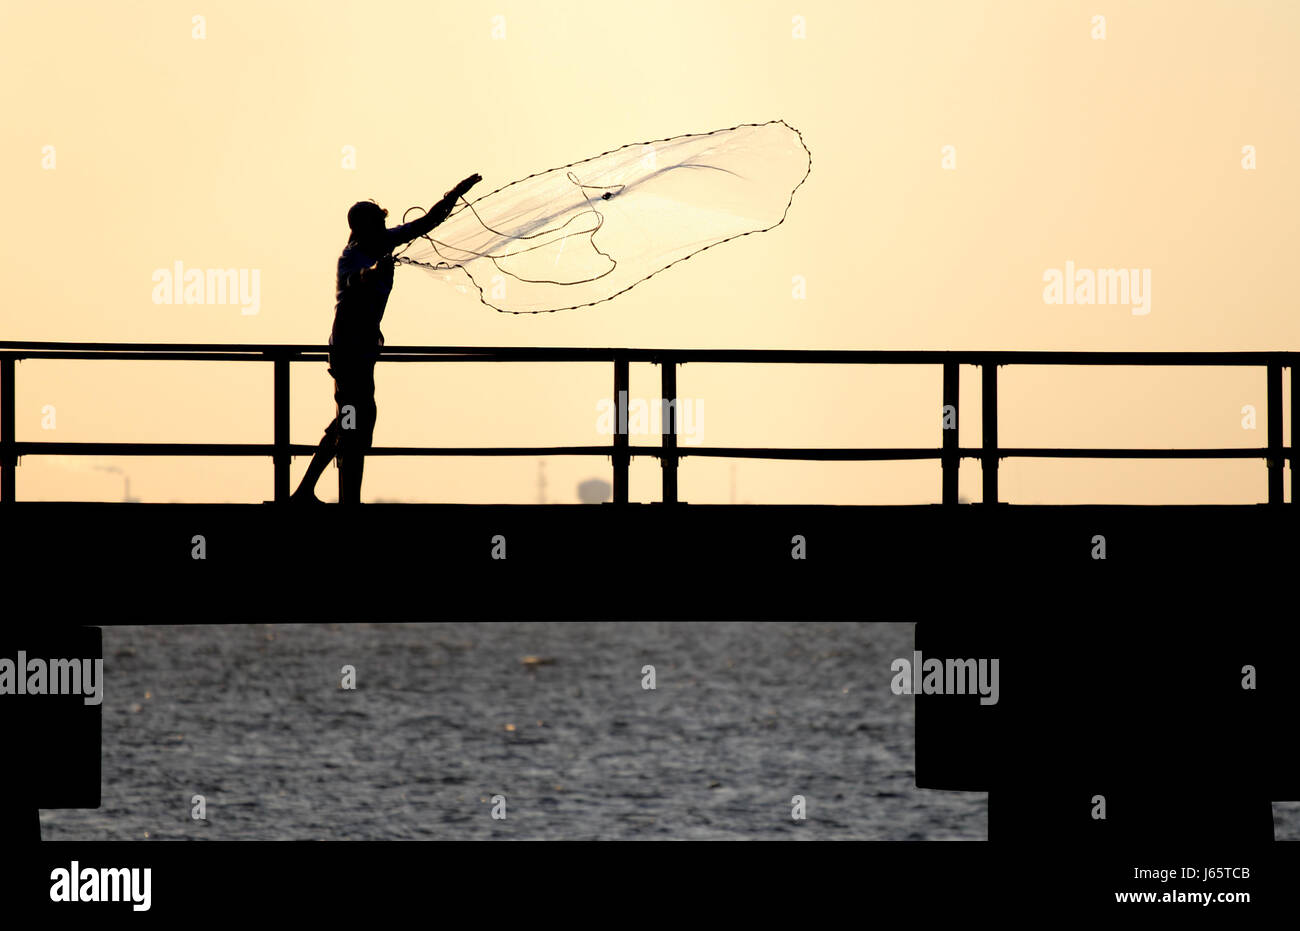 Fish Toss Stock Photos & Fish Toss Stock Images